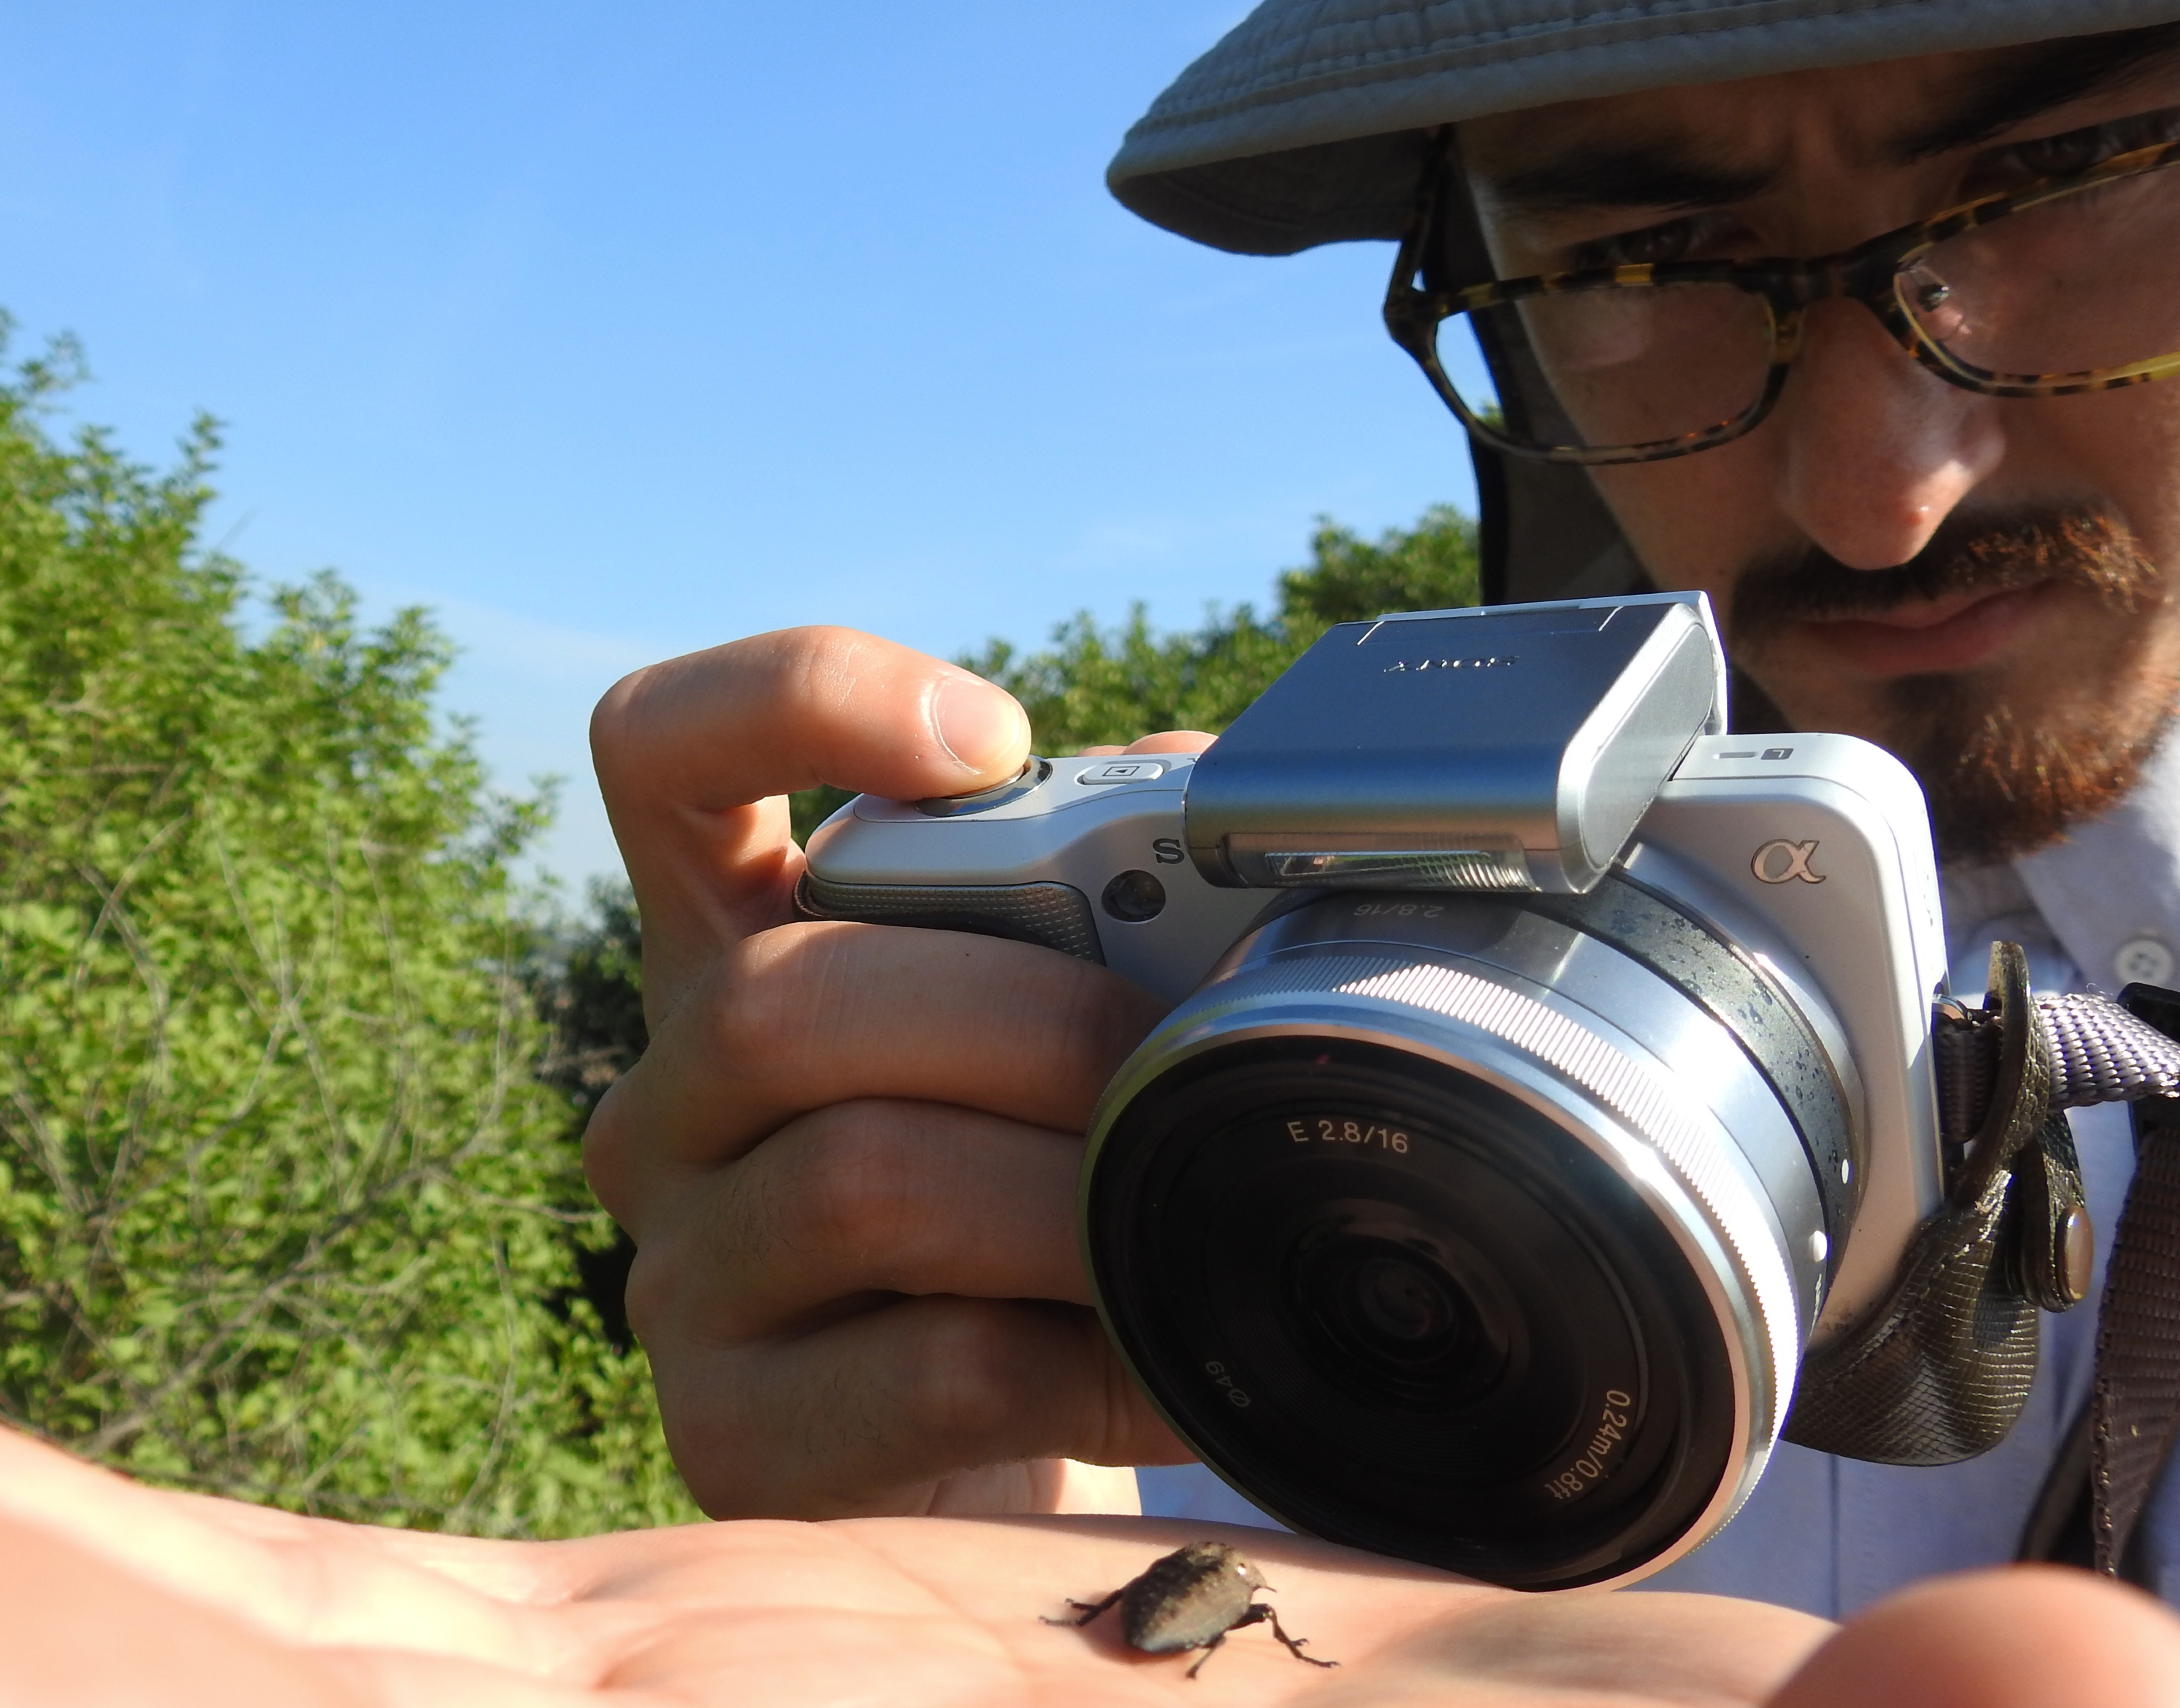 Adam photographing the prized jewel beetle